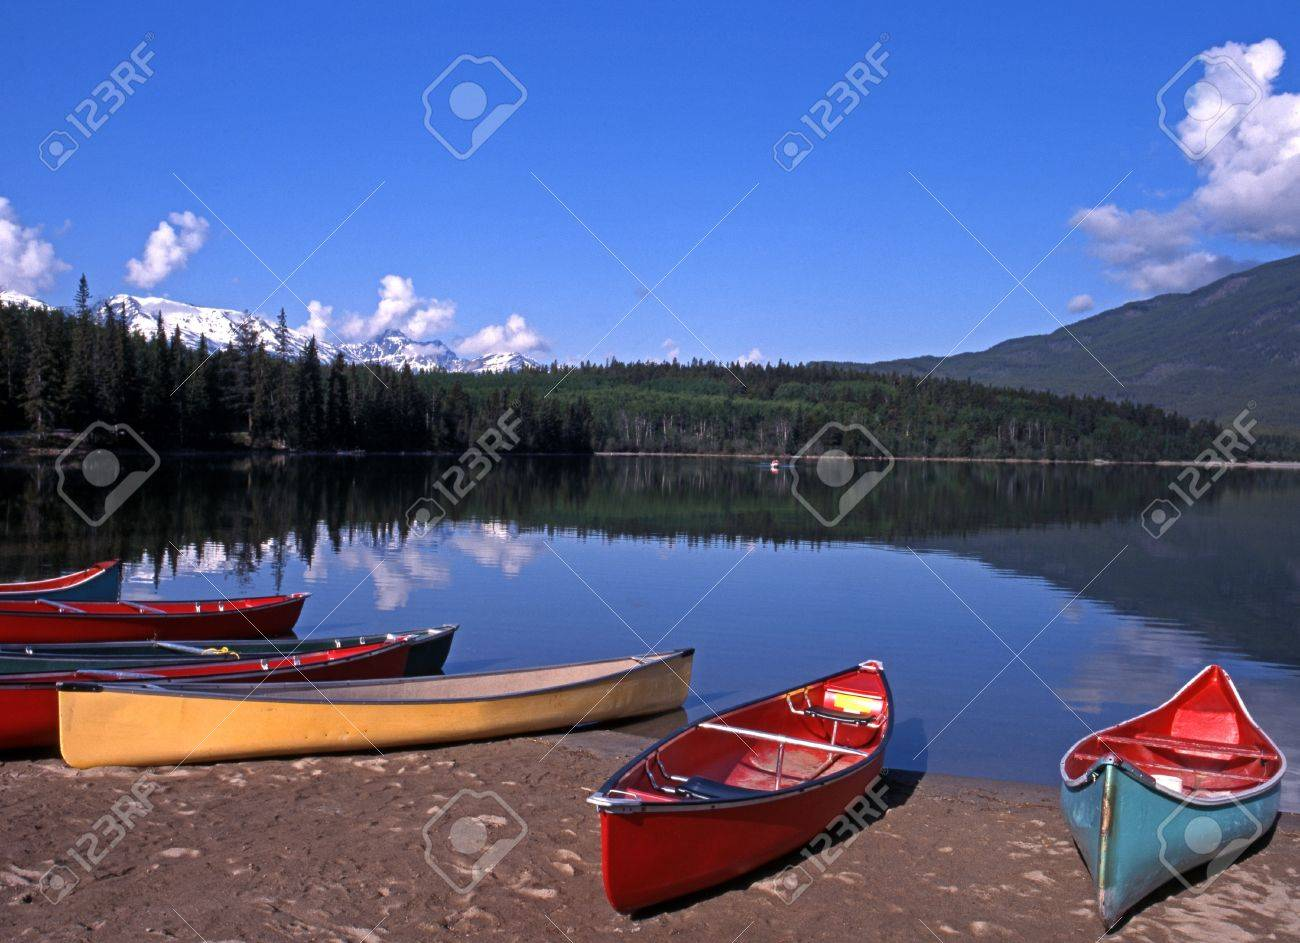 Canoes on the edge of Pyramid Lake, Jasper National Park, Alberta, Canada Stock Photo - 15468968